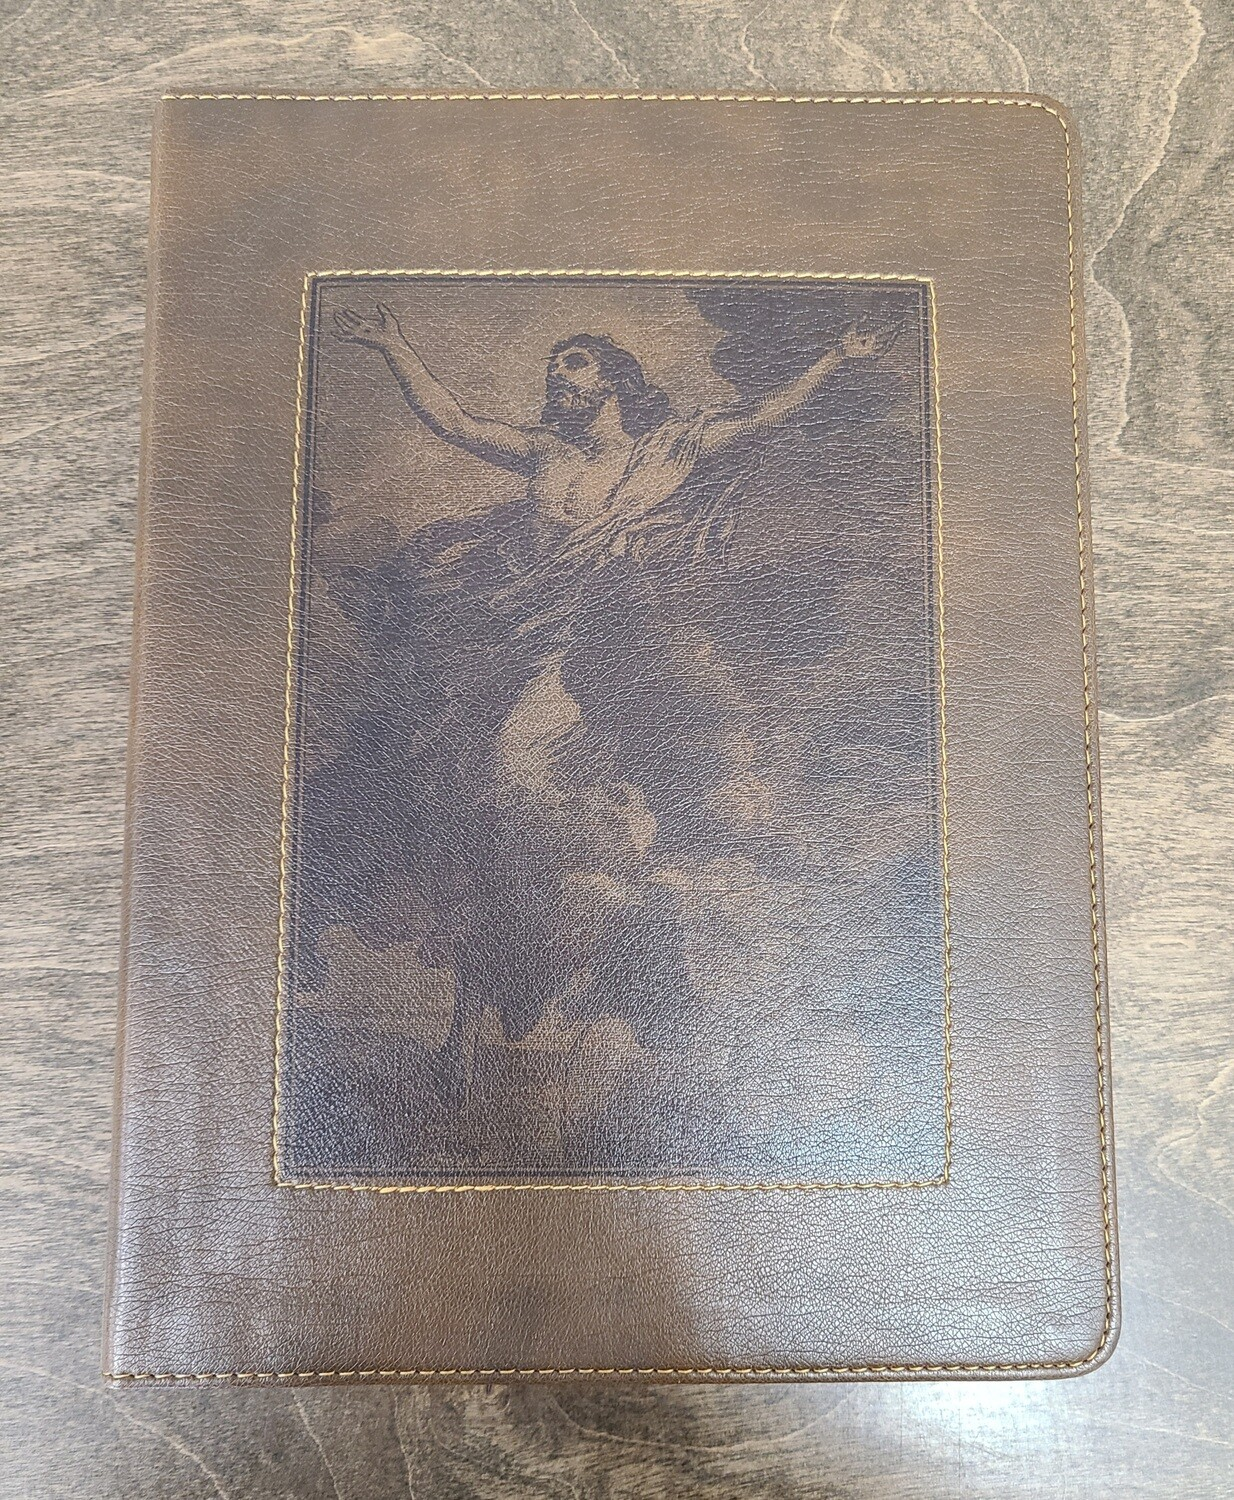 HCSB The Gospel Project Bible - Christ Ascending Design with Brown LeatherTouch